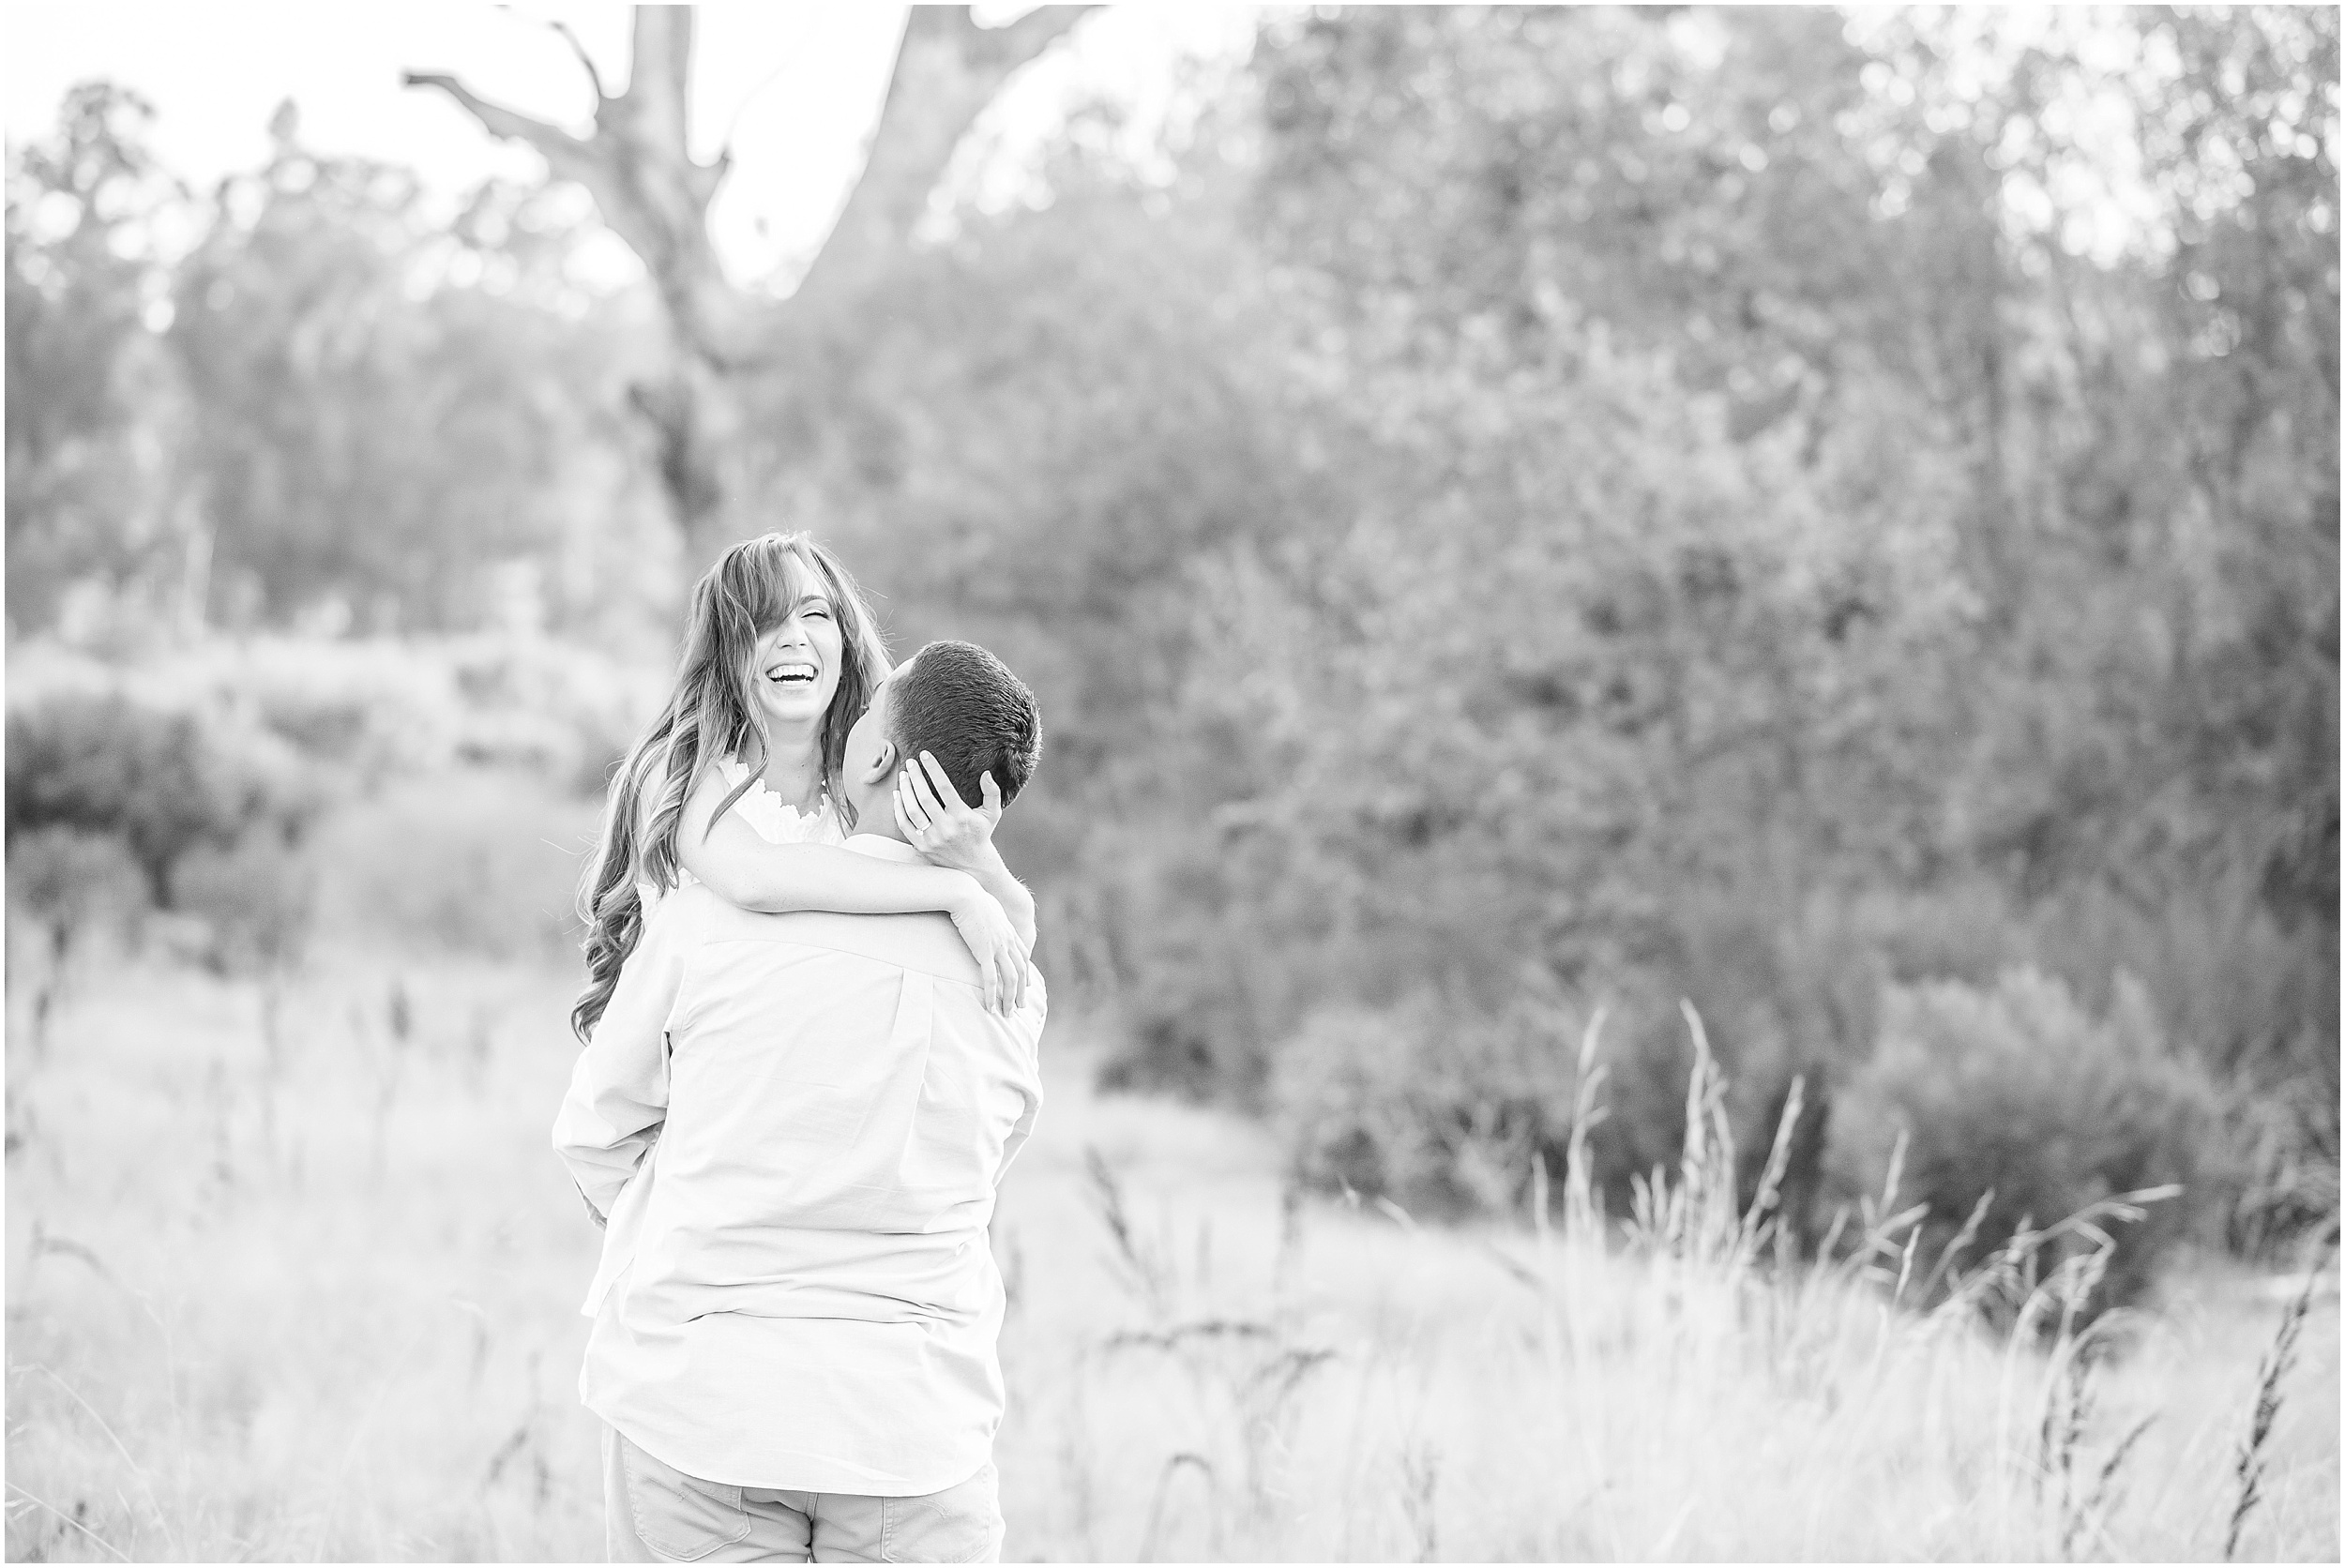 Valeria-Gonzalez-Photography-Wedding-and-Portrait-Photographer-Richmond-Virginia-Engagement-Session-in-Ojai-California_0020.jpg